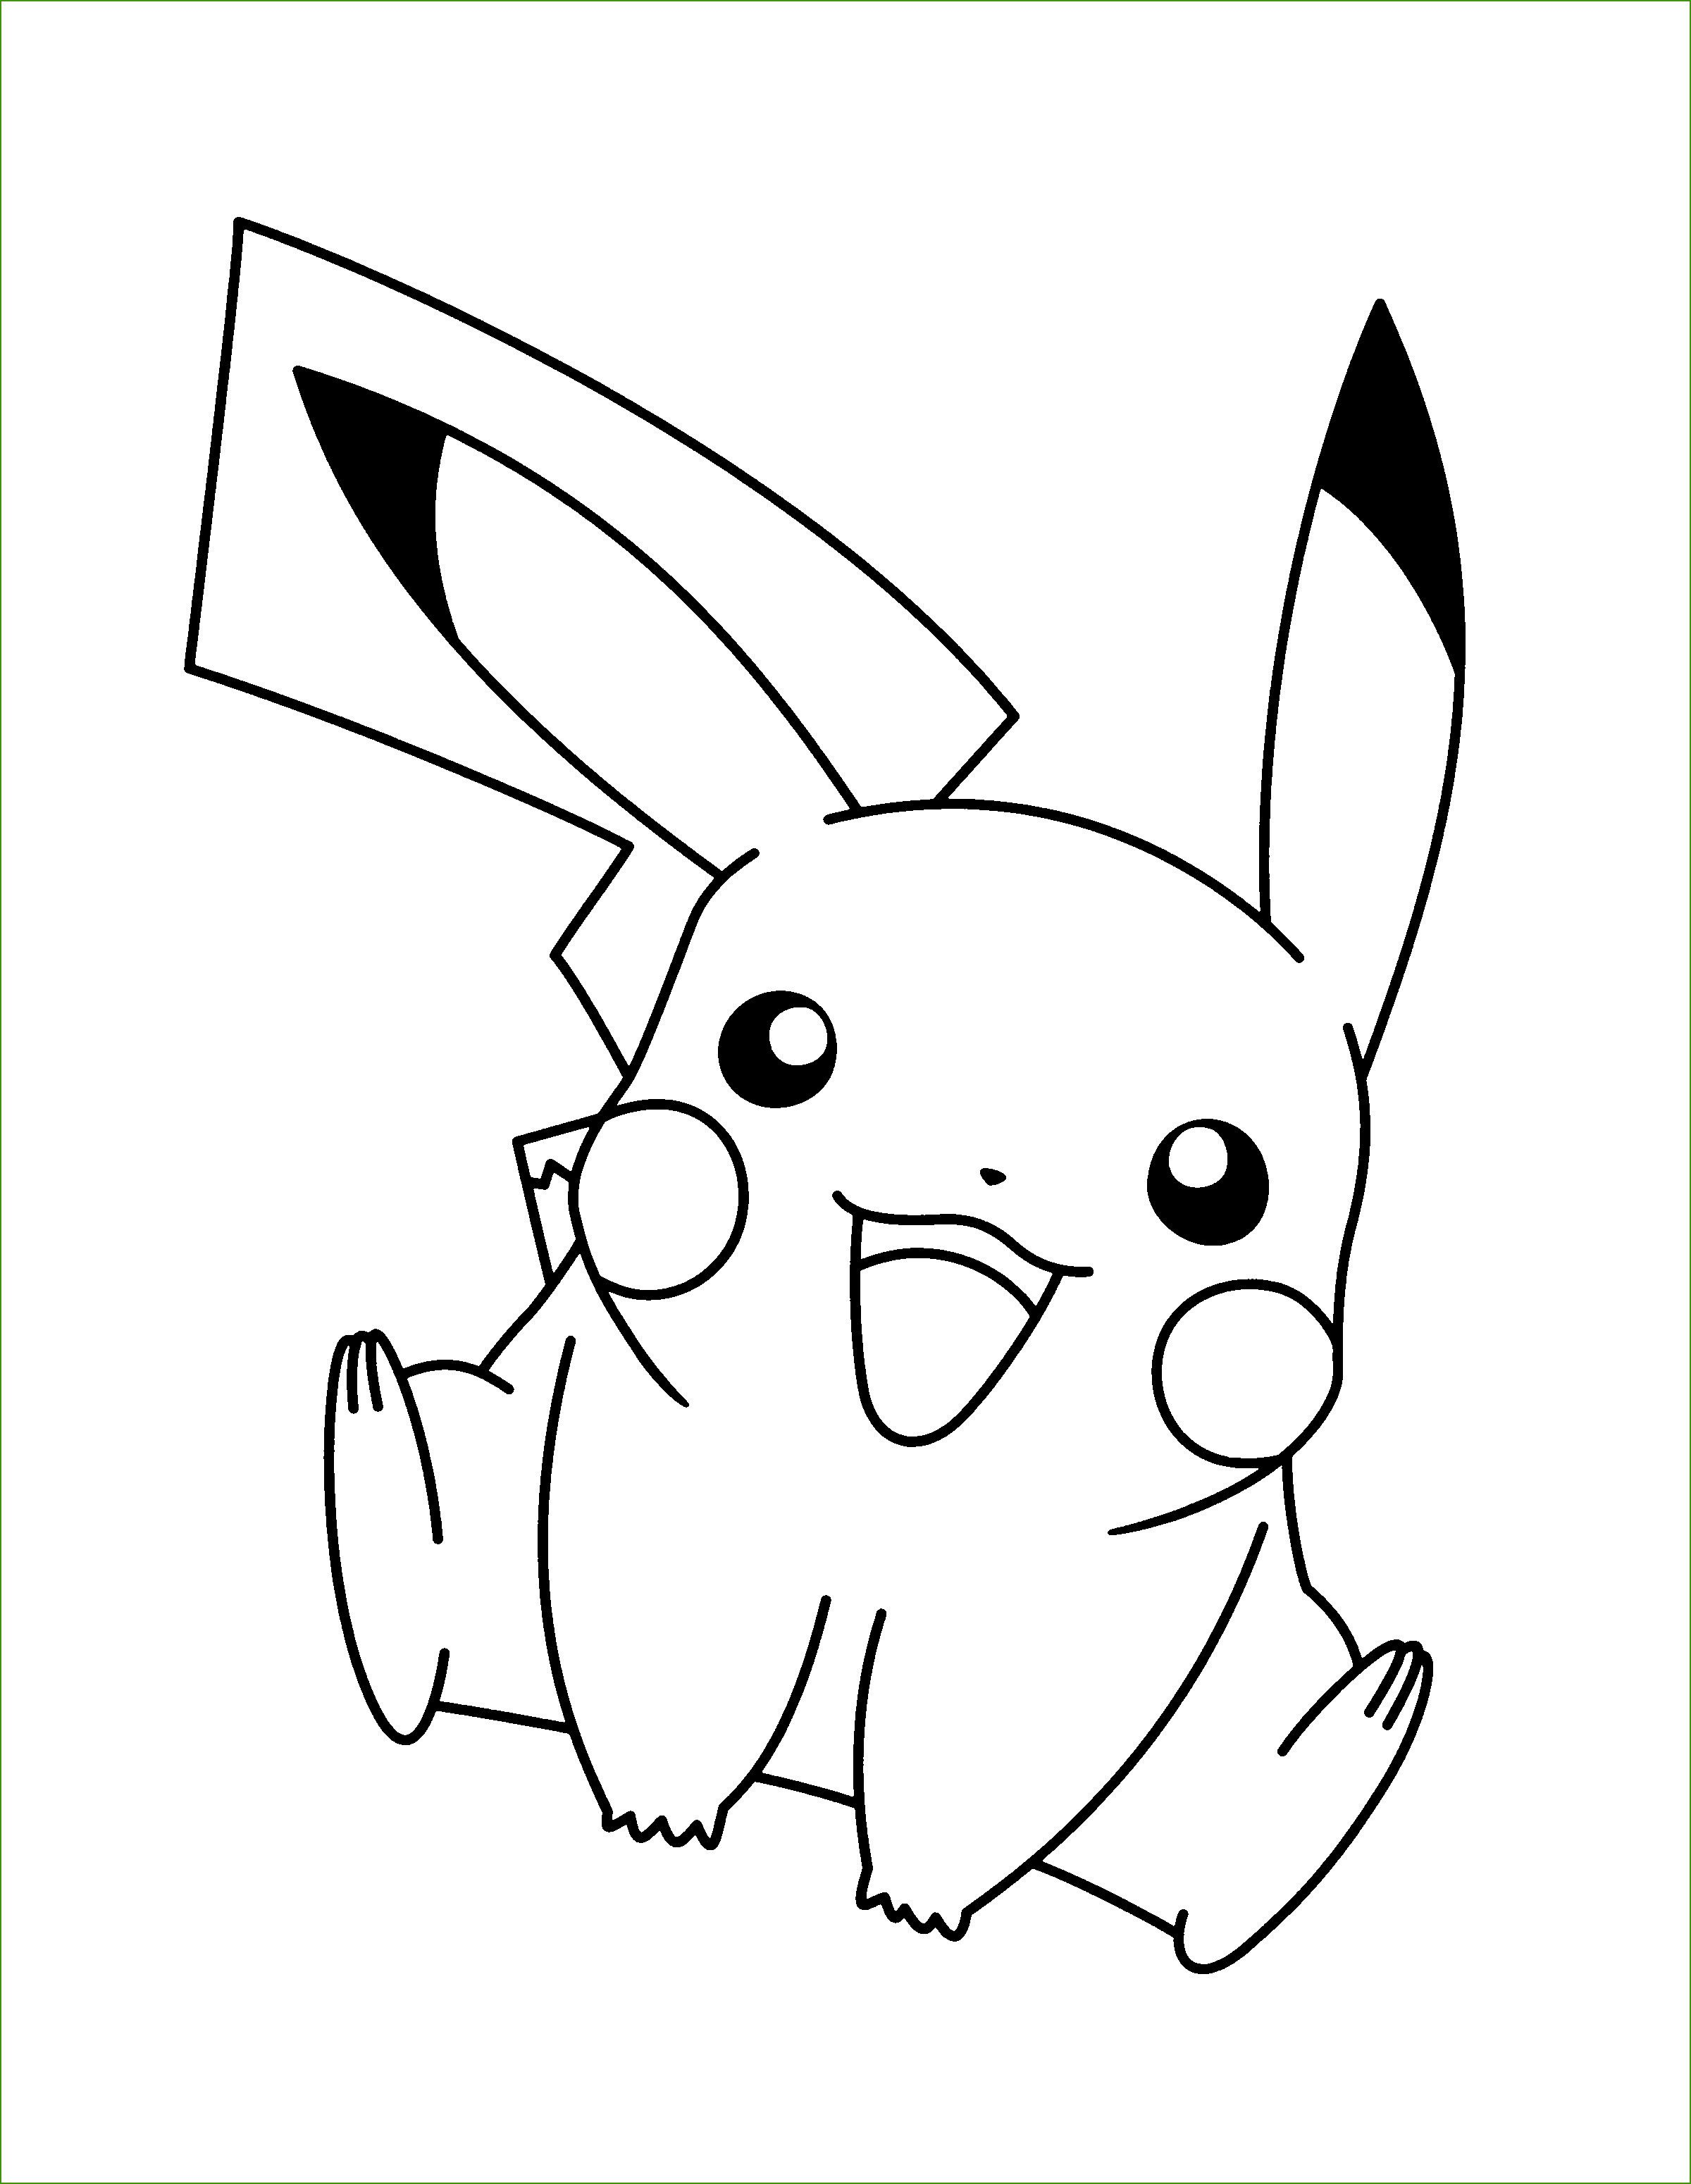 Coloriage Pokemon Mega Raichu Belle Dessins Gratuits Colorier